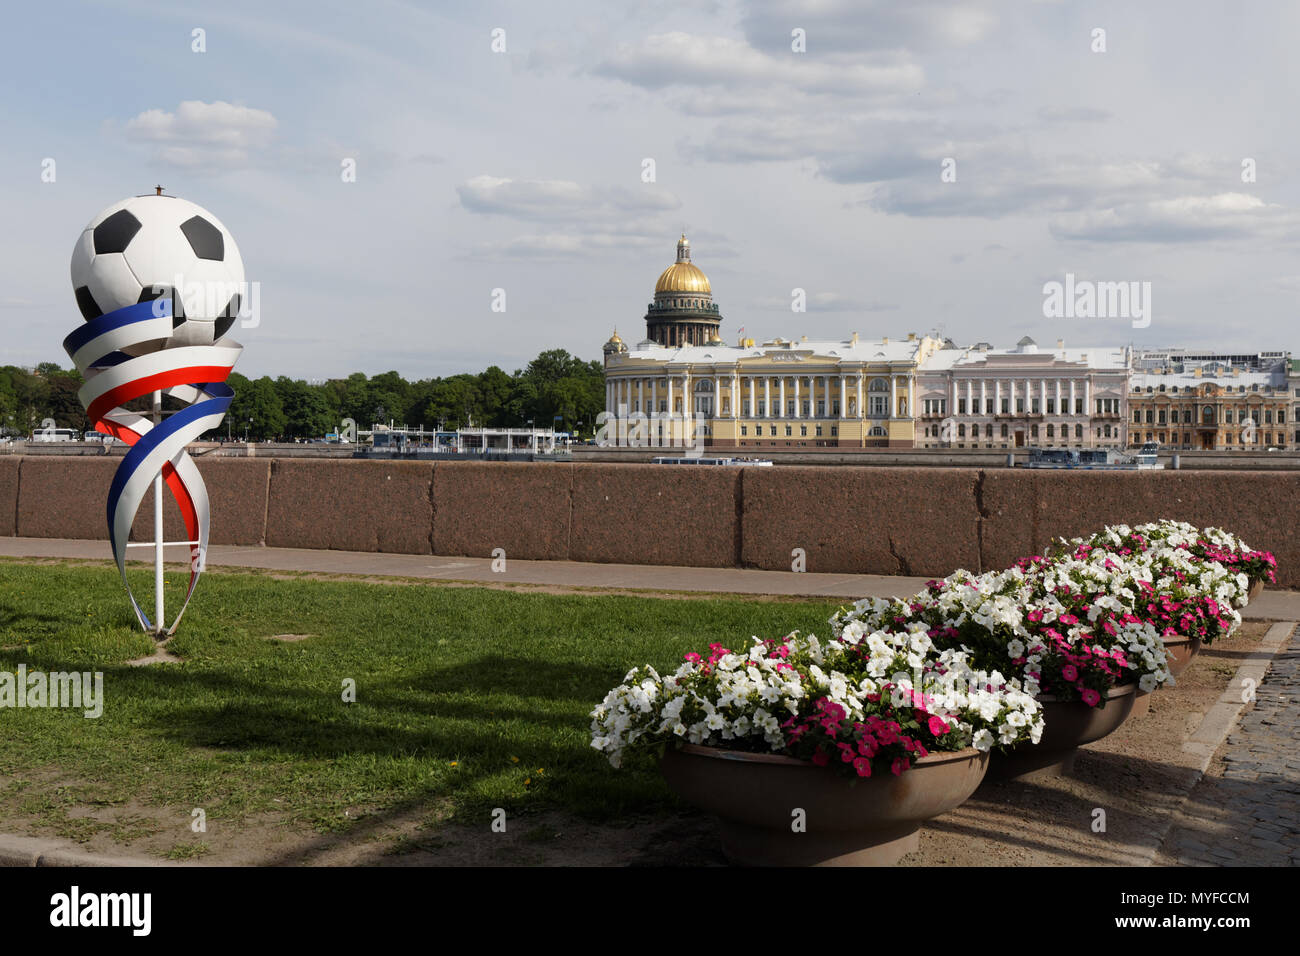 Installation with a ball against Neva river and St. Isaac's cathedral. Saint Petersburg prepares to hosting FIFA World Cup 2018 - Stock Image